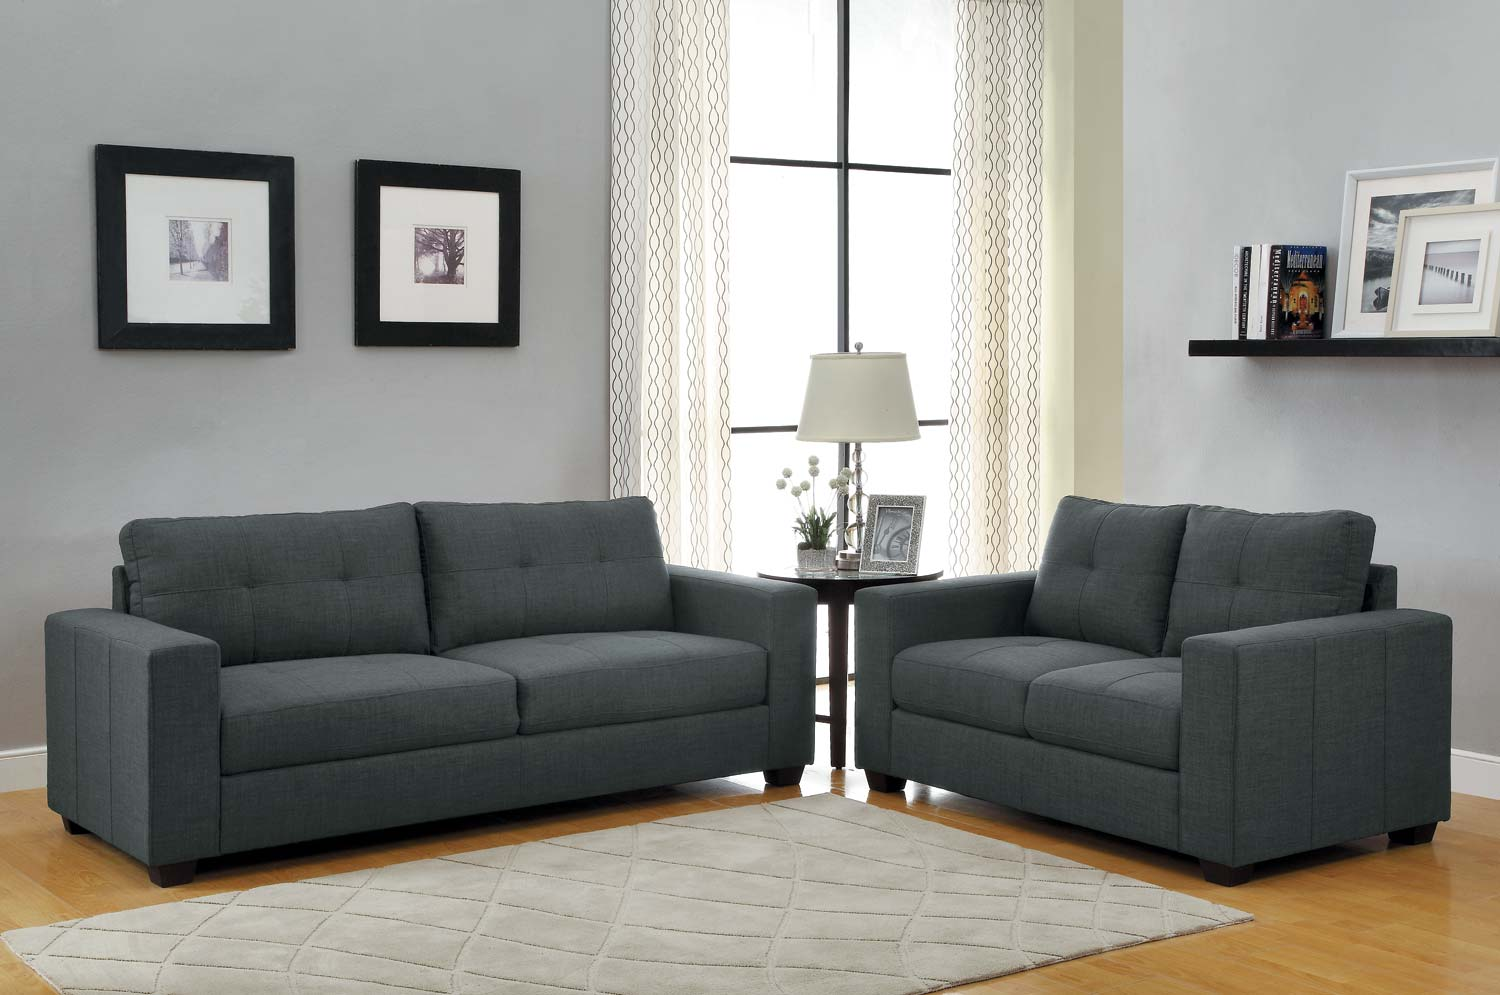 Homelegance Ashmont Sofa Set Dark Grey Linen U9639 3  ~ Dark Gray Sofa Living Room